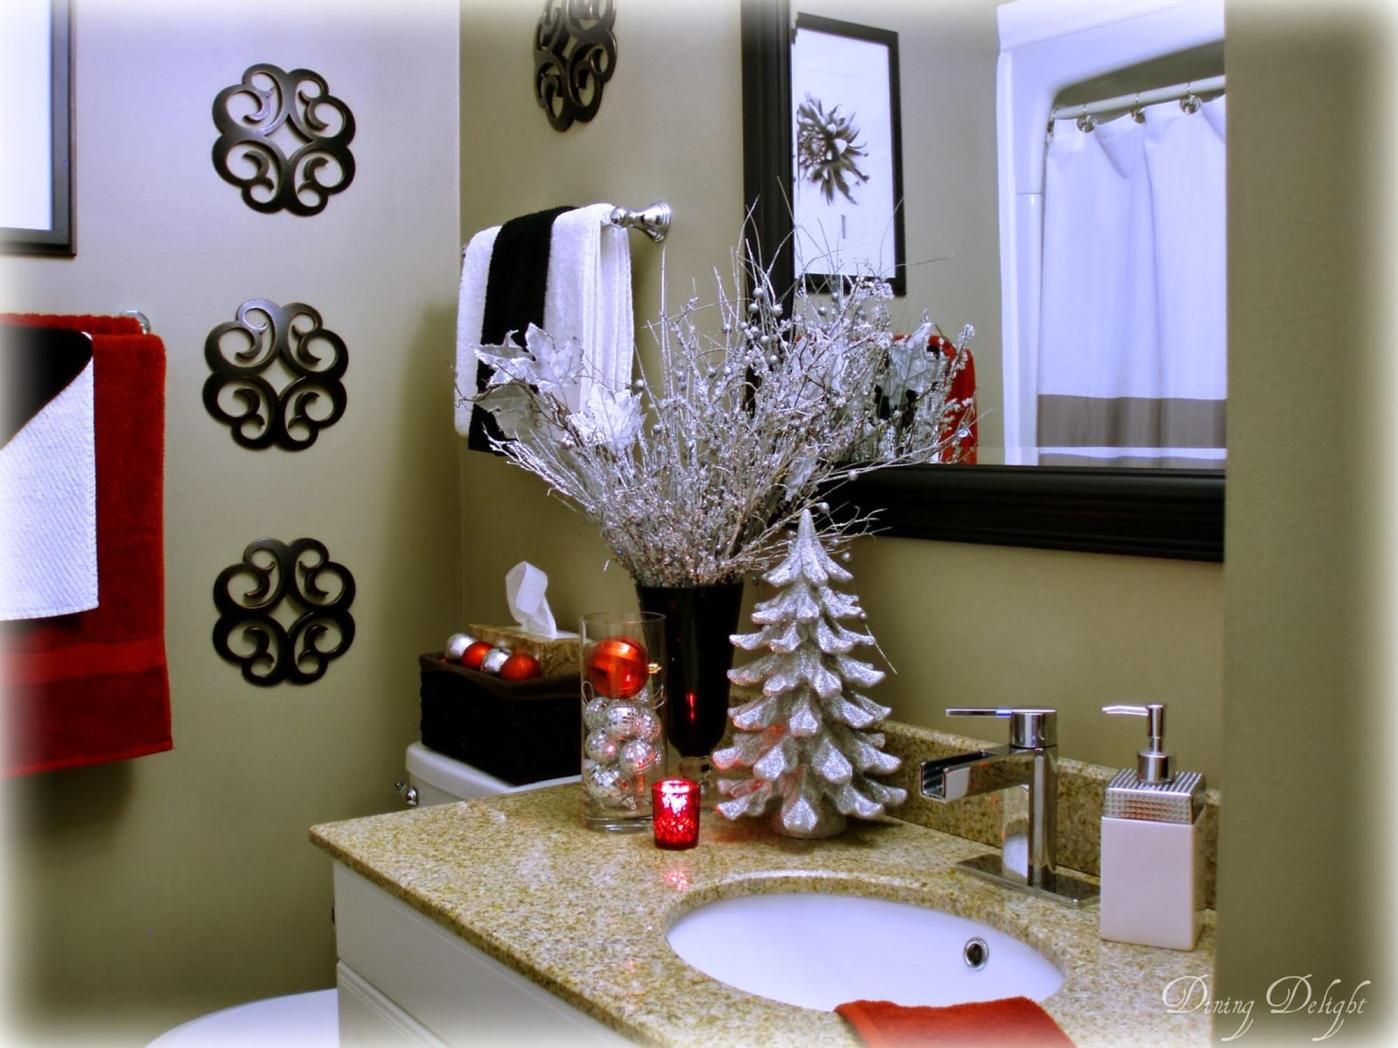 Bathroom with Holiday Wall Decor 16